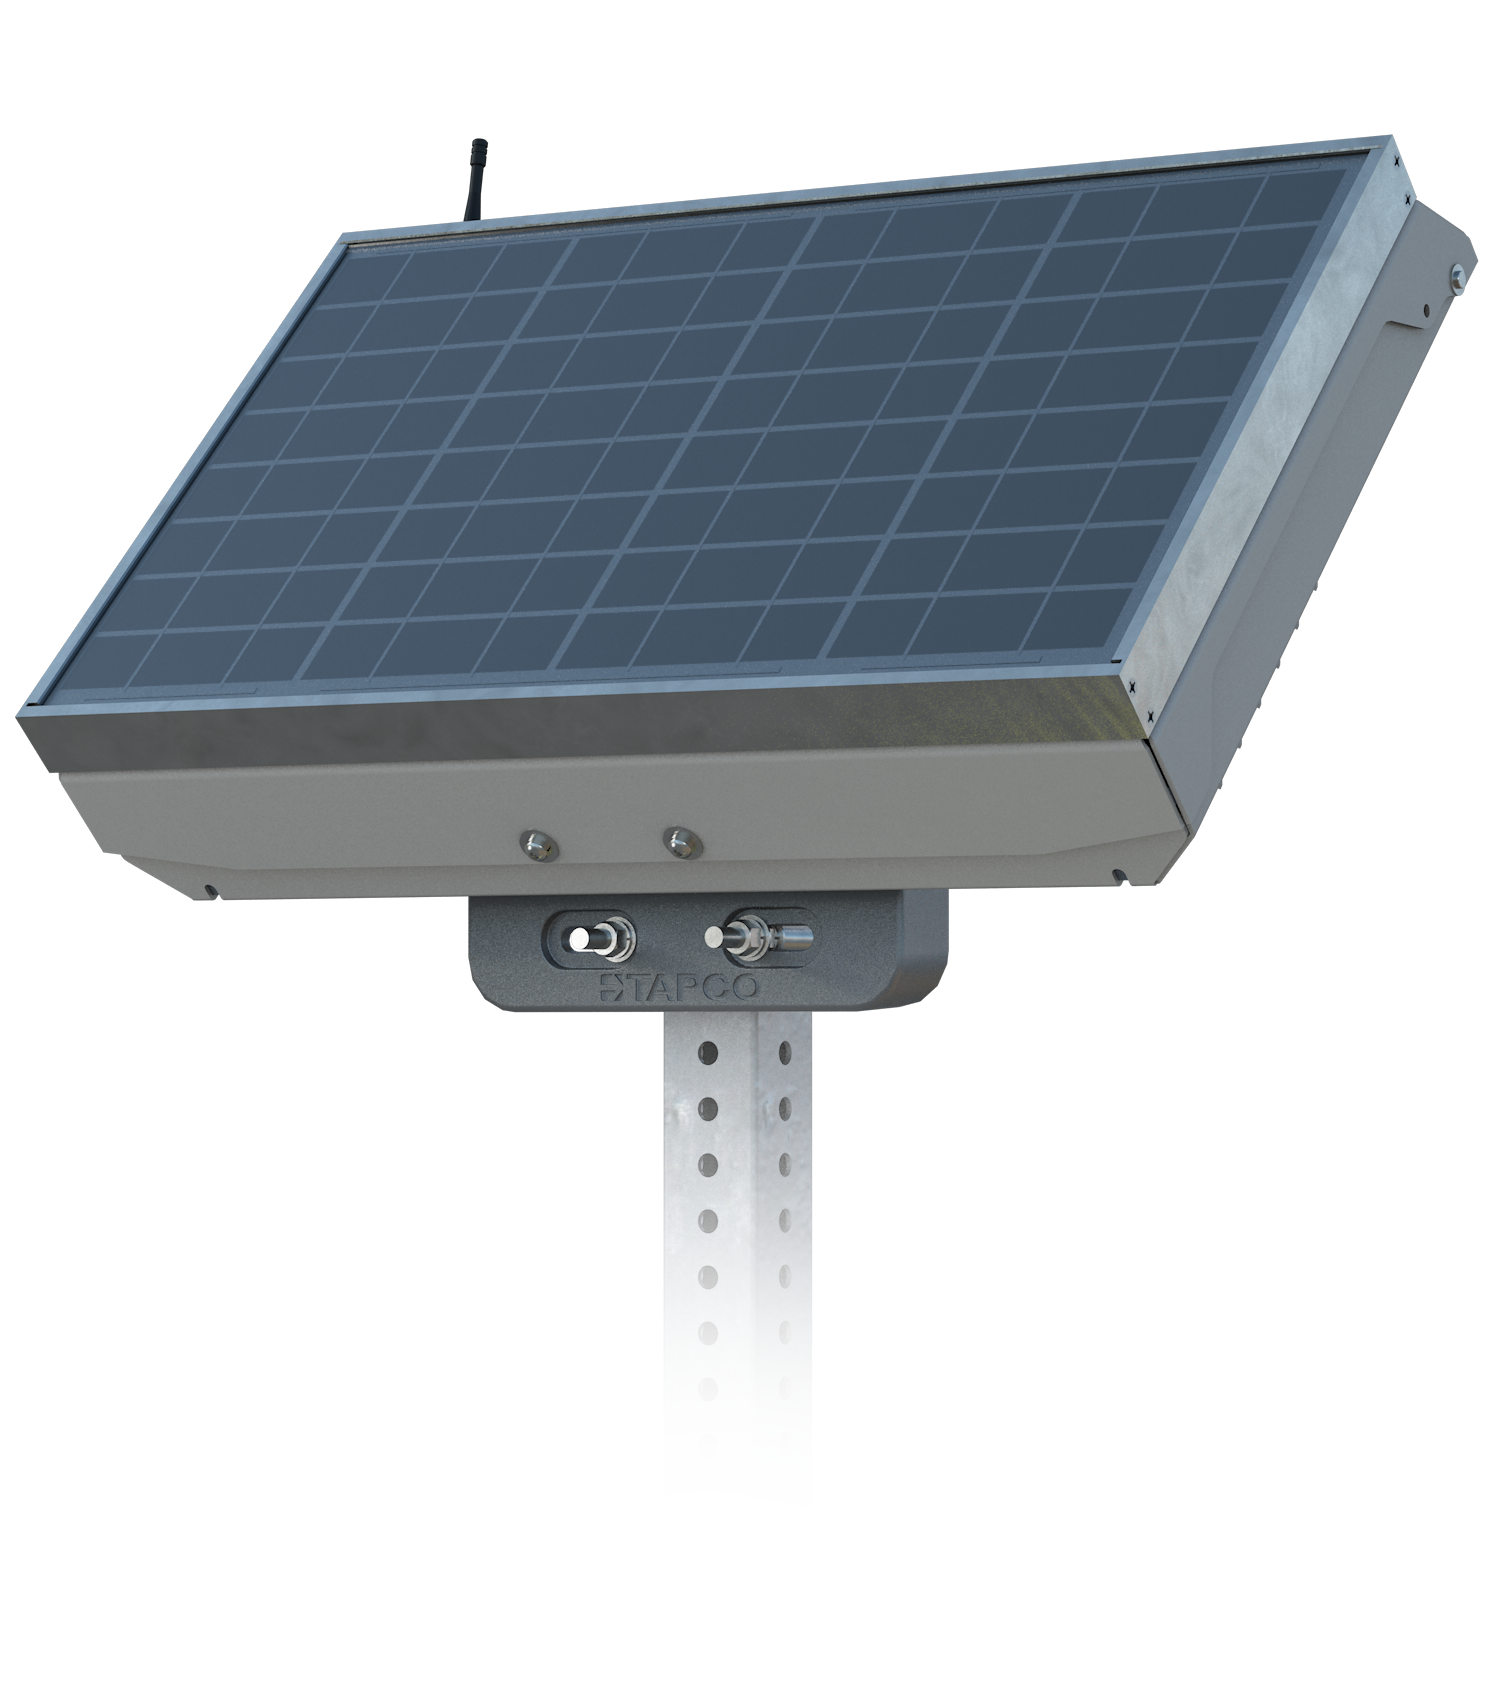 20W Self Contained Solar Power Data Sheet Download